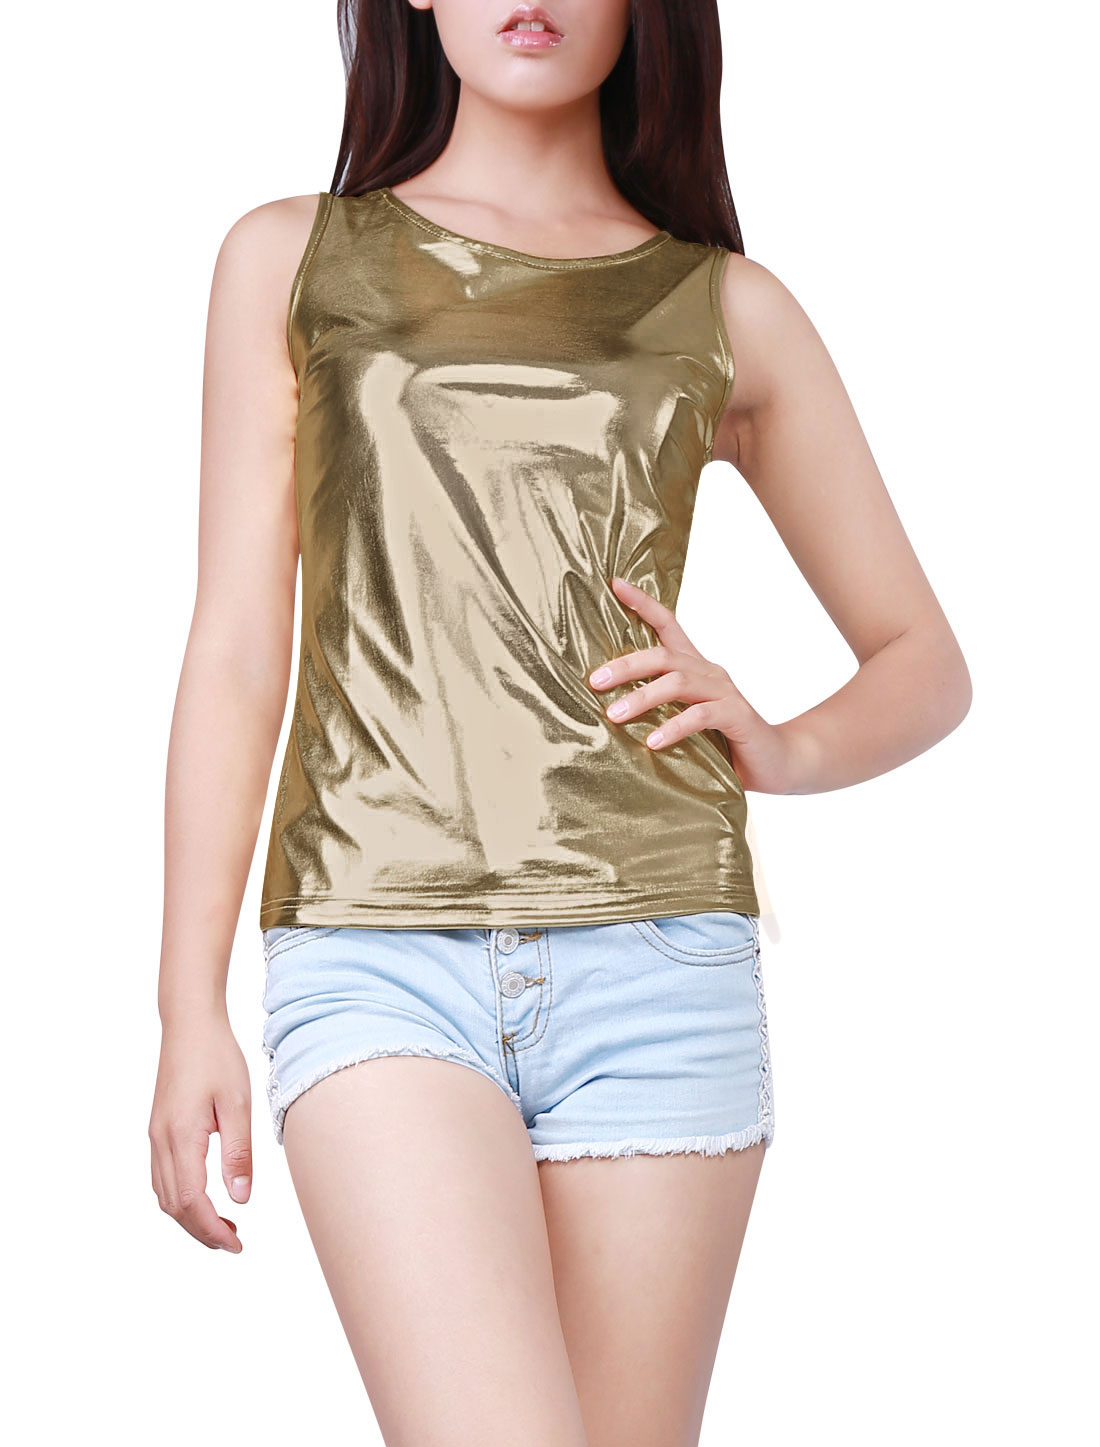 Woman U Neck Stretch Slim Fit Metallic Tank Top Light Gold XS